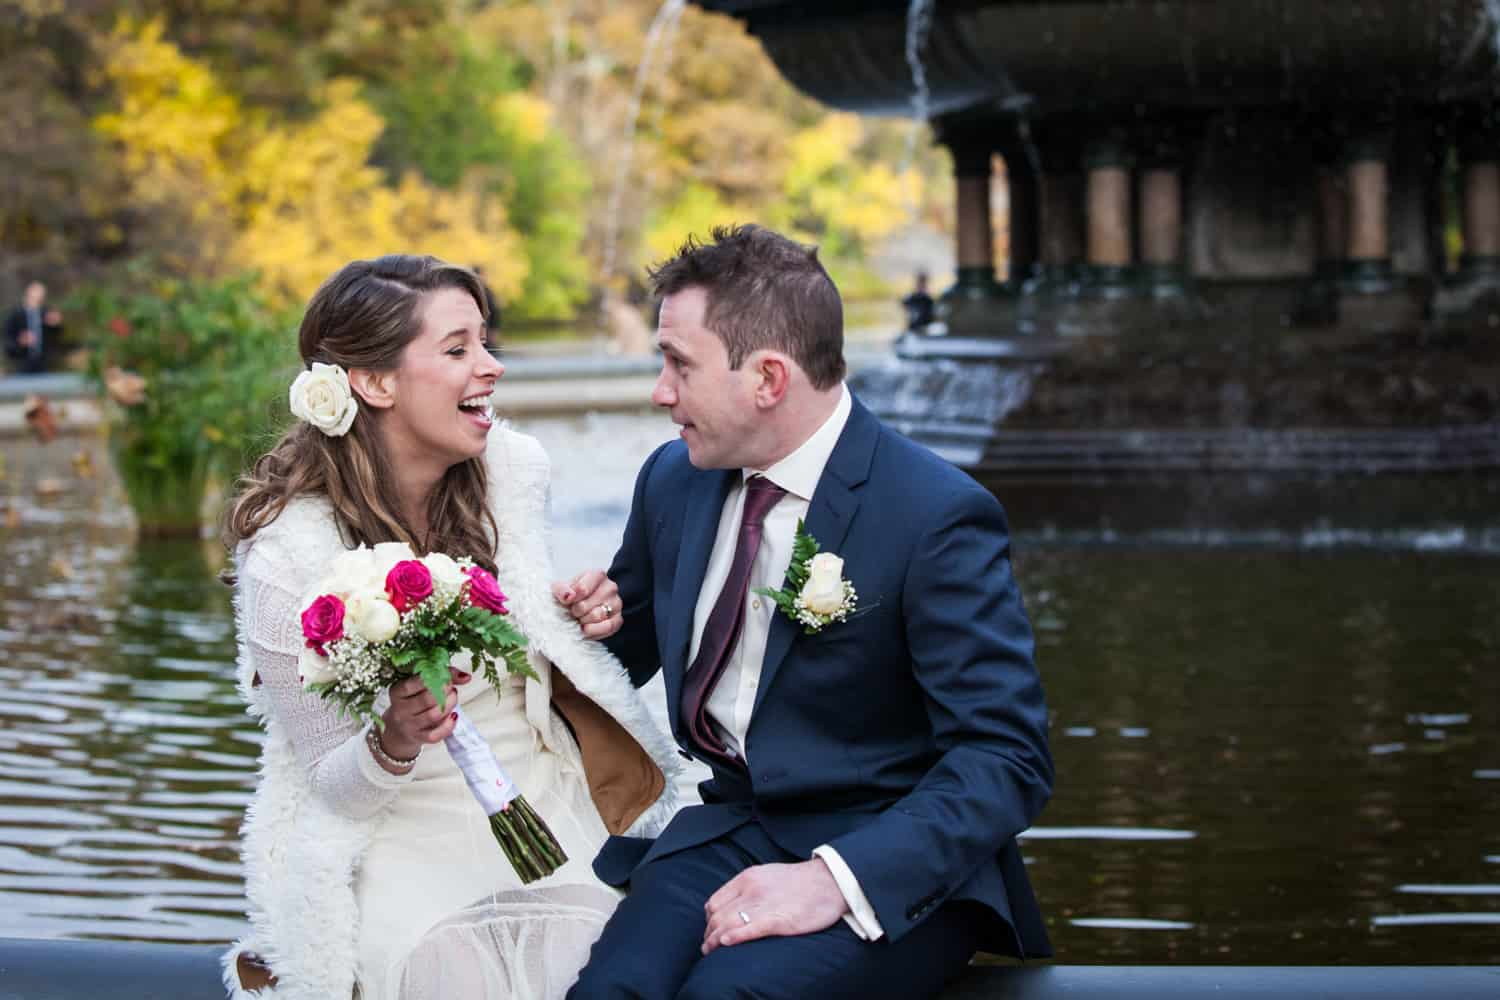 Bride and groom laughing at a Bethesda Fountain wedding in Central Park